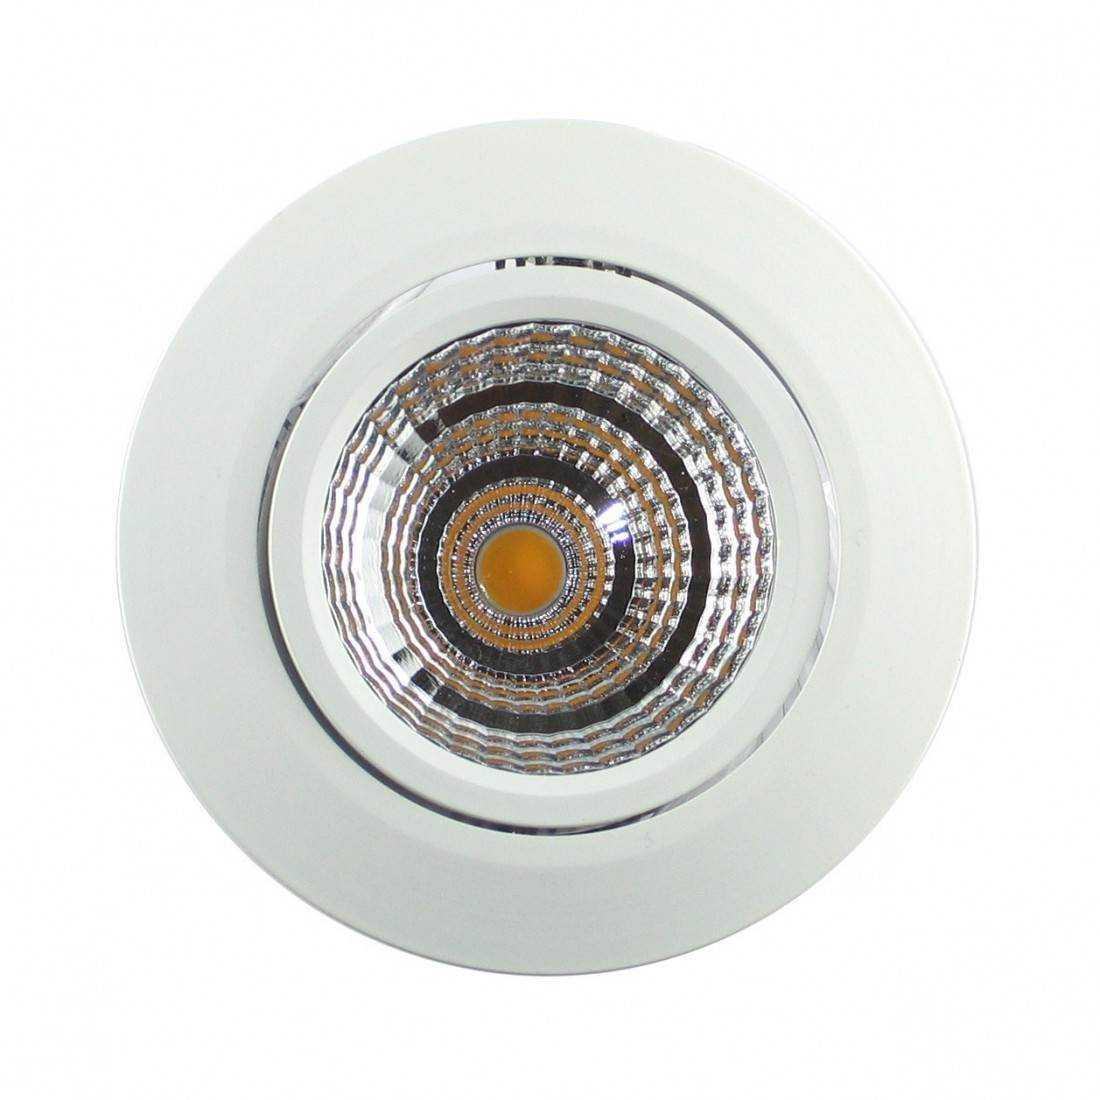 Spot led blanc encastrable 7w 230v for Spot led interieur encastrable